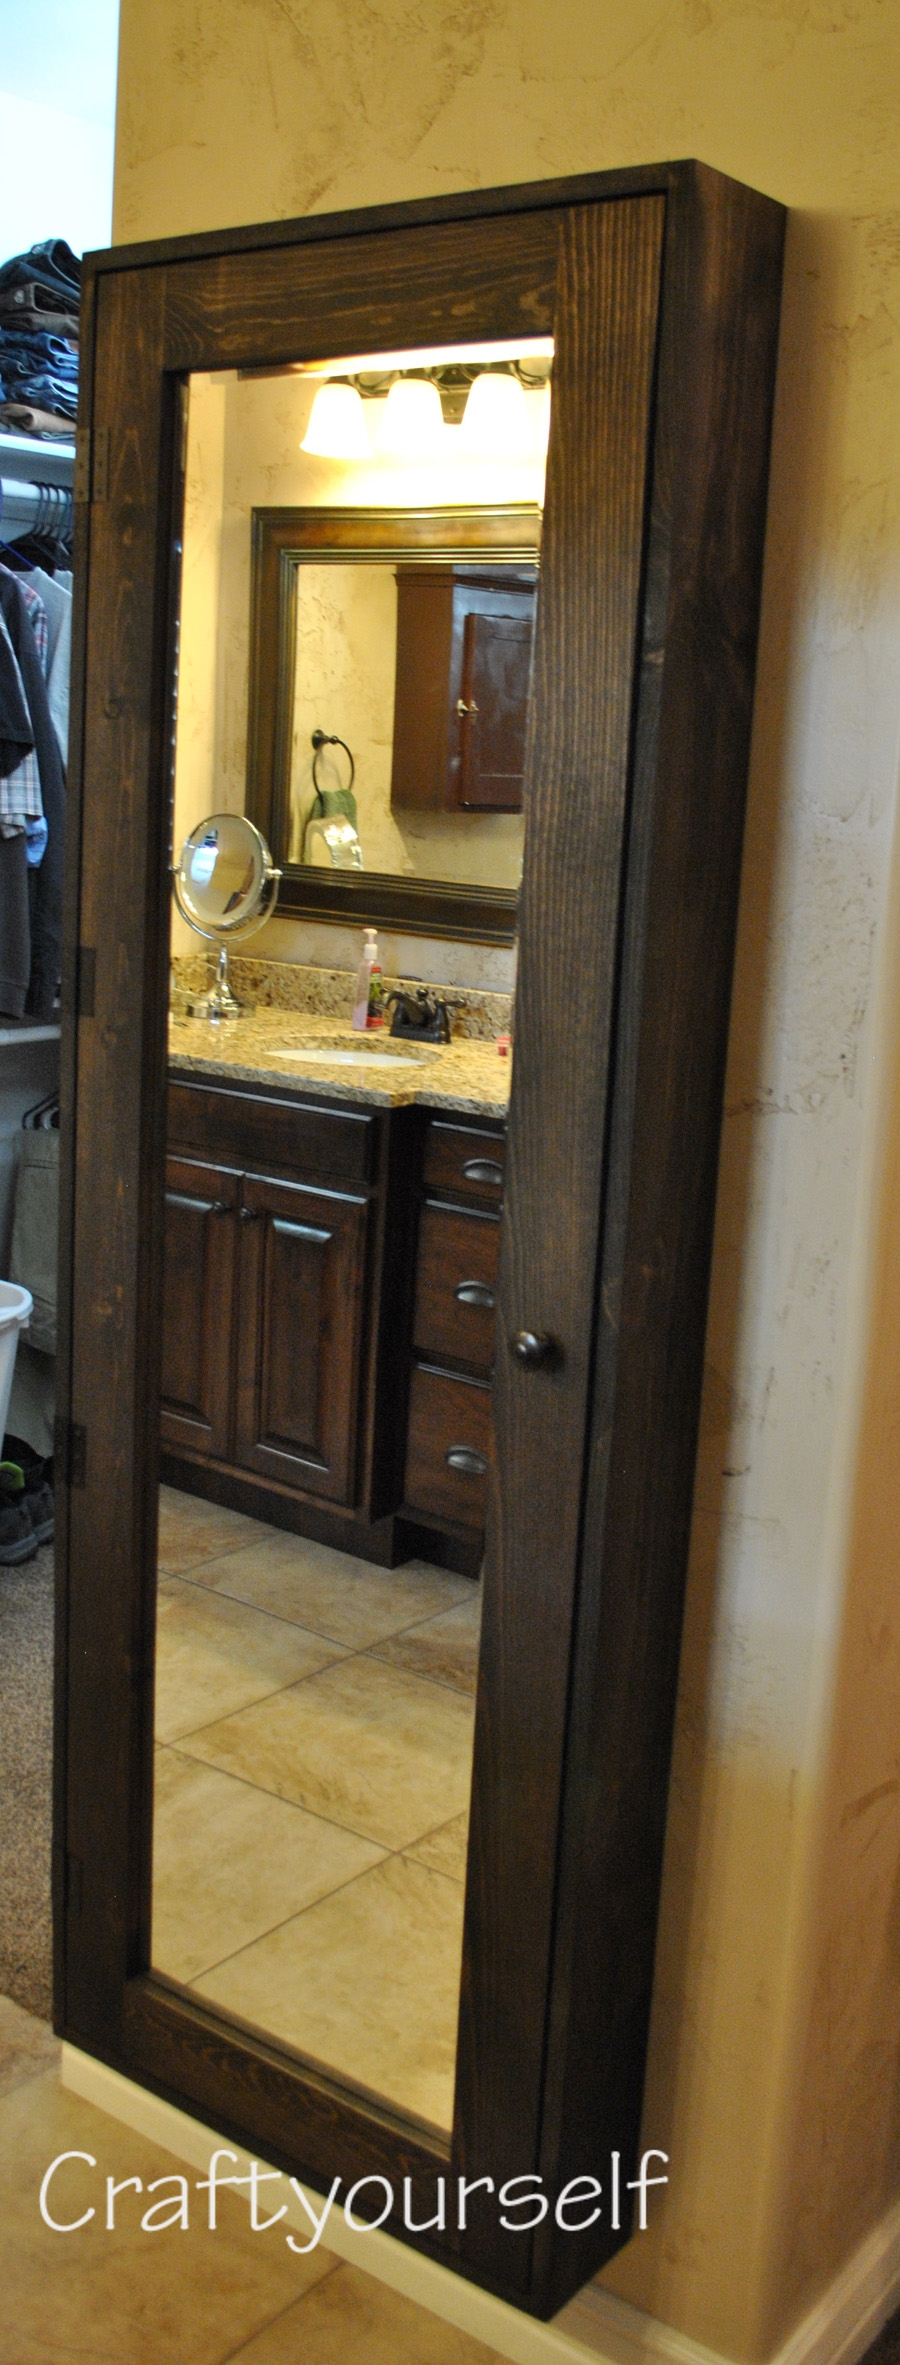 Full Length Mirrored Bathroom Cabinets